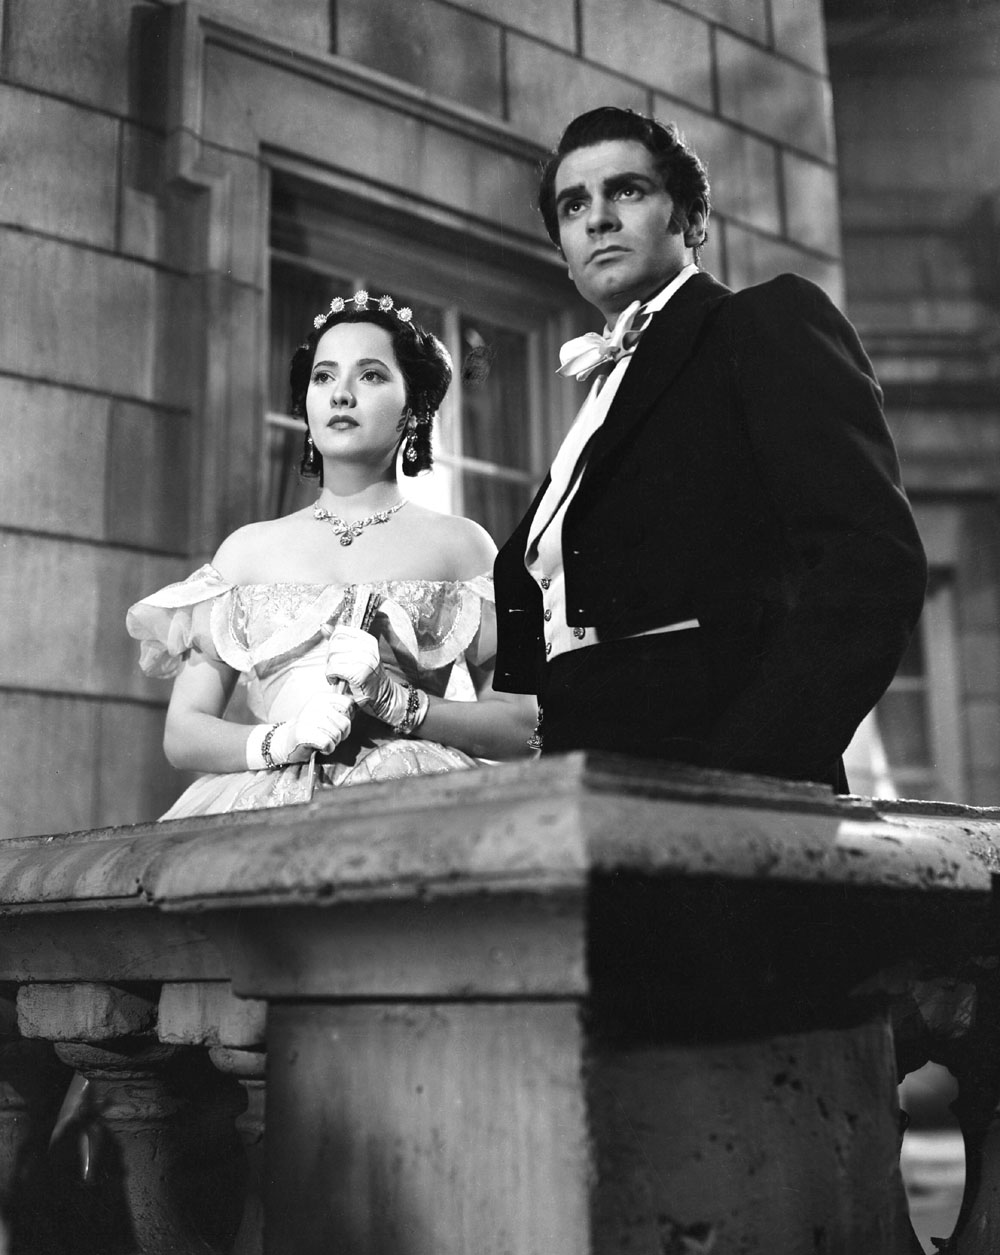 Laurence and Merle Oberon in Wuthering Heights in 1939